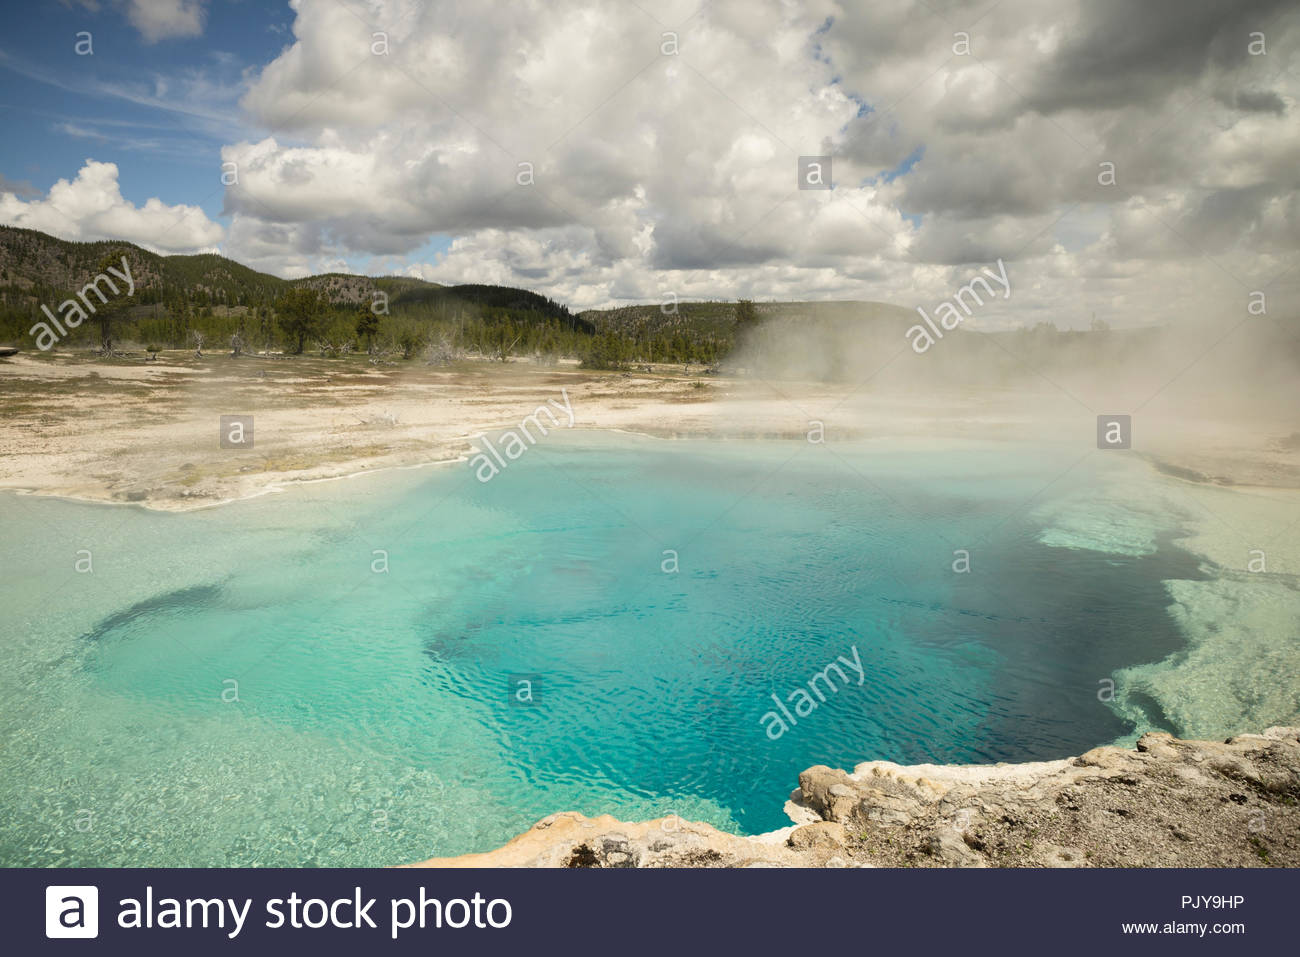 Sapphire Pool at Biscuit Basin, Yellowstone National Park, Wyoming - Stock Image